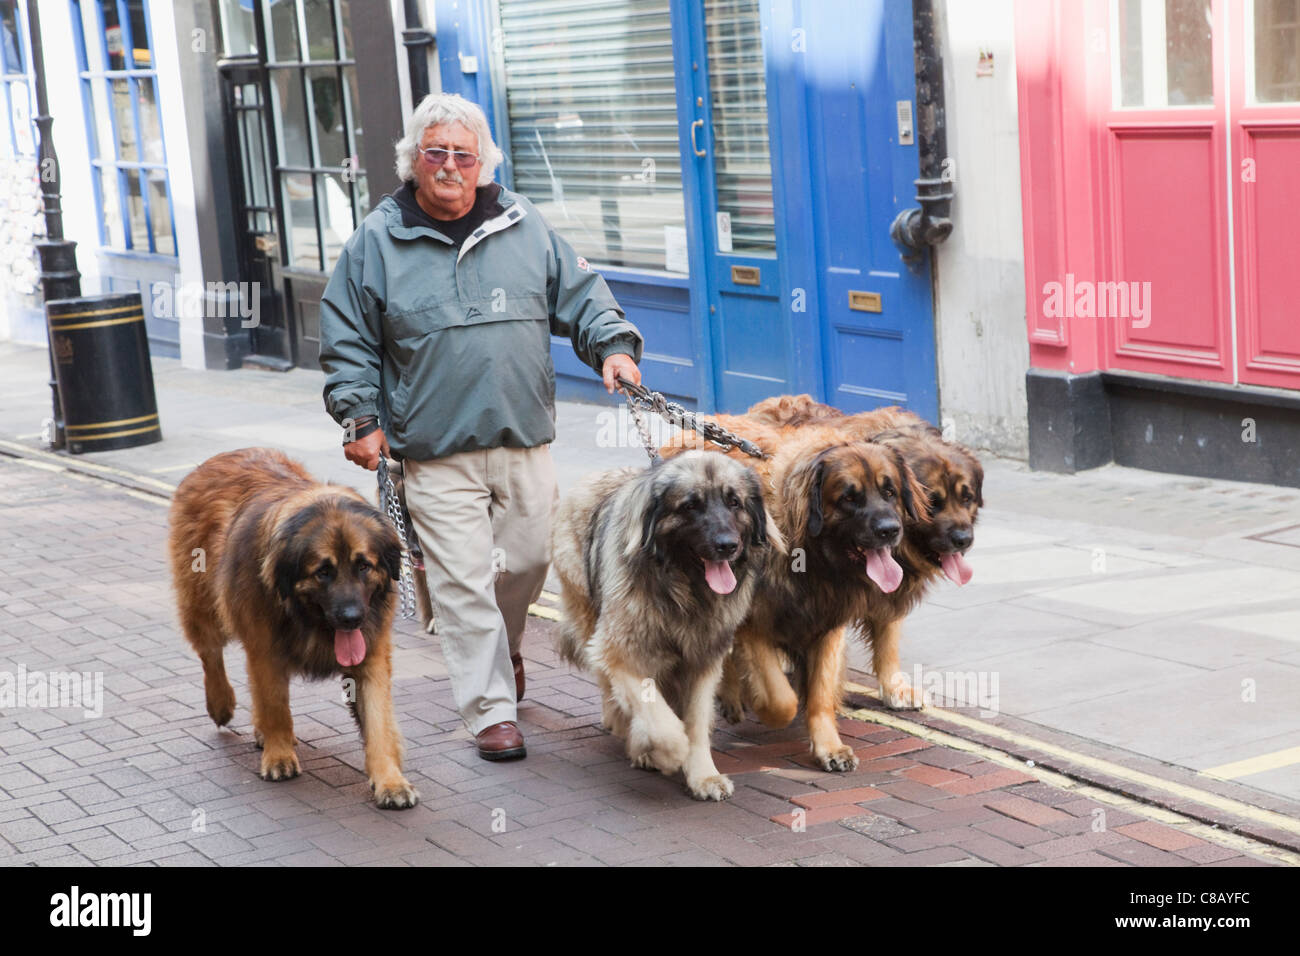 Where To Buy A Dog In London Uk